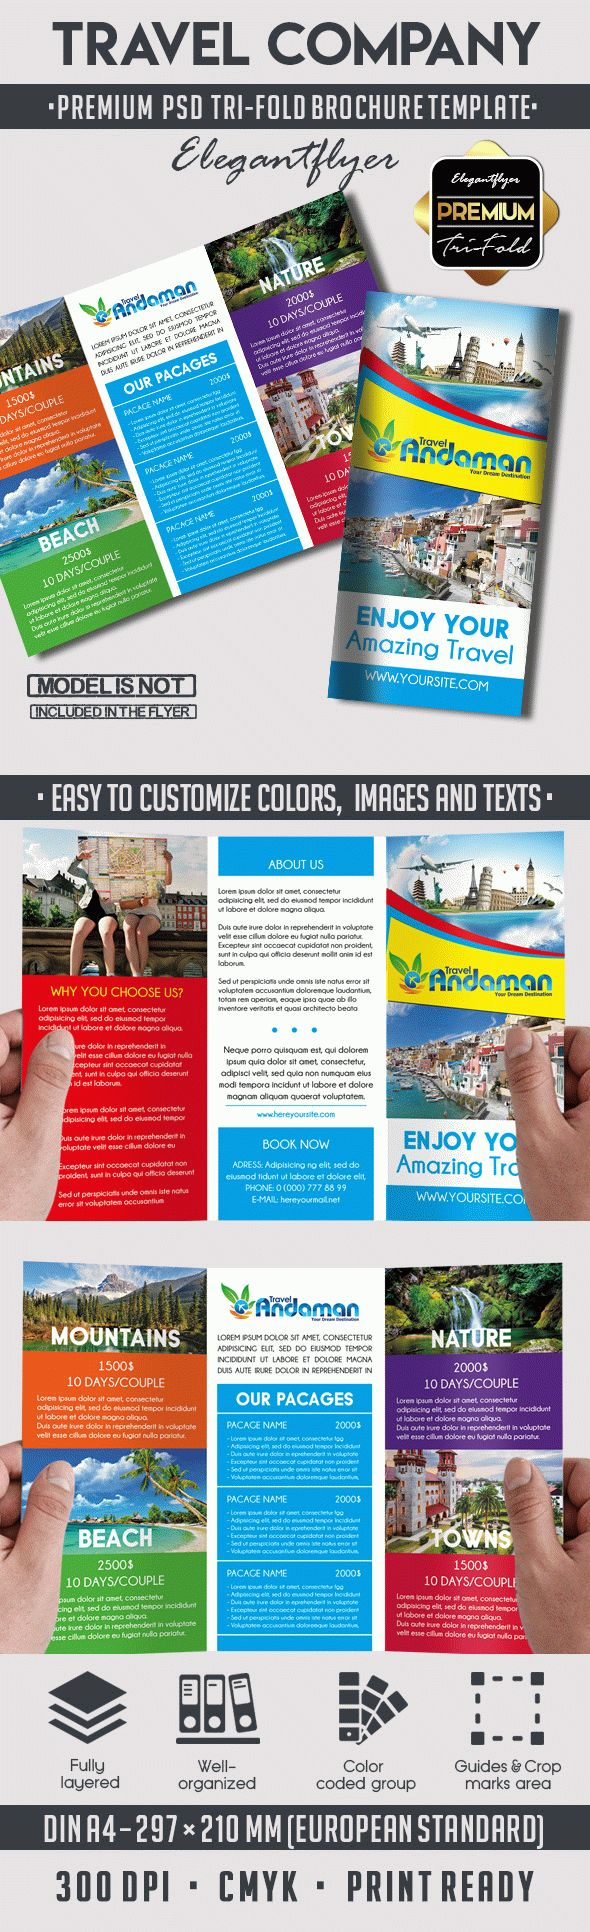 two fold brochure template psd - travel premium tri fold psd brochure template by